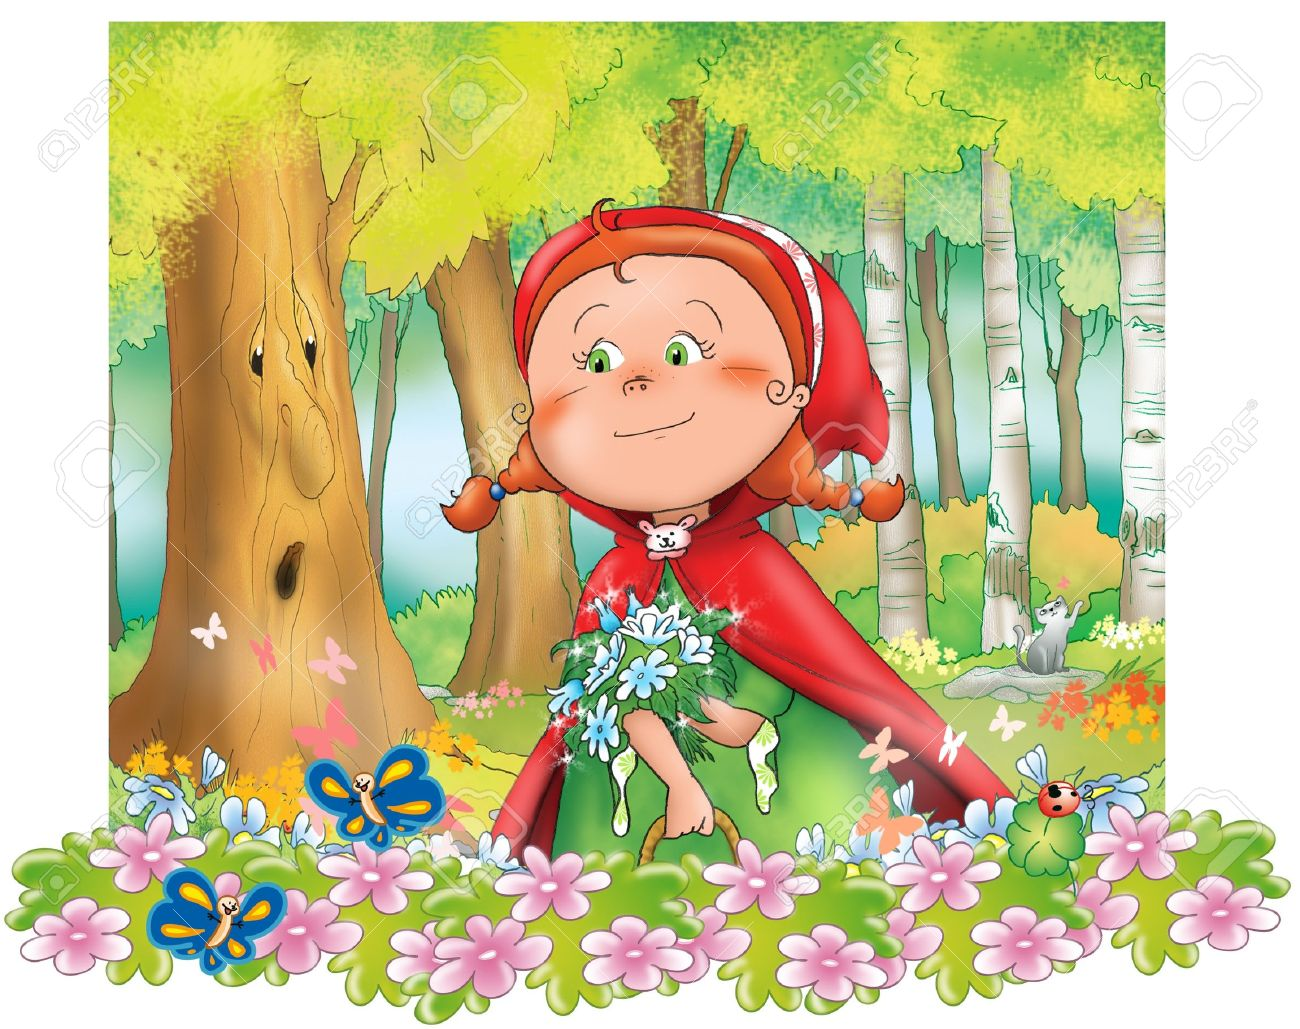 Little Red Riding Hood with blue flowers in the wood  Digital illustration Stock Photo - 13133111